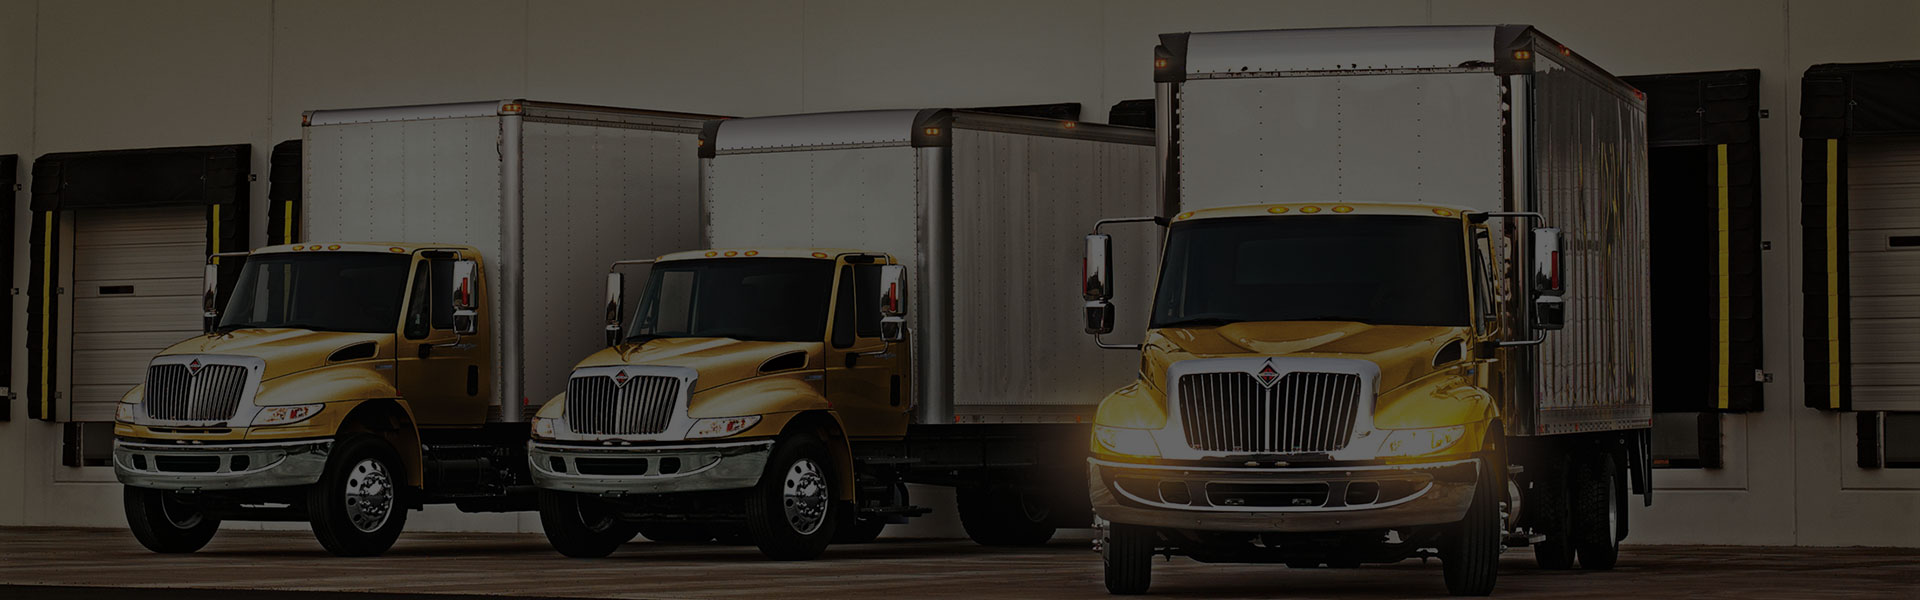 NEED TO RENT A TRUCK FOR YOUR BUSINESS?